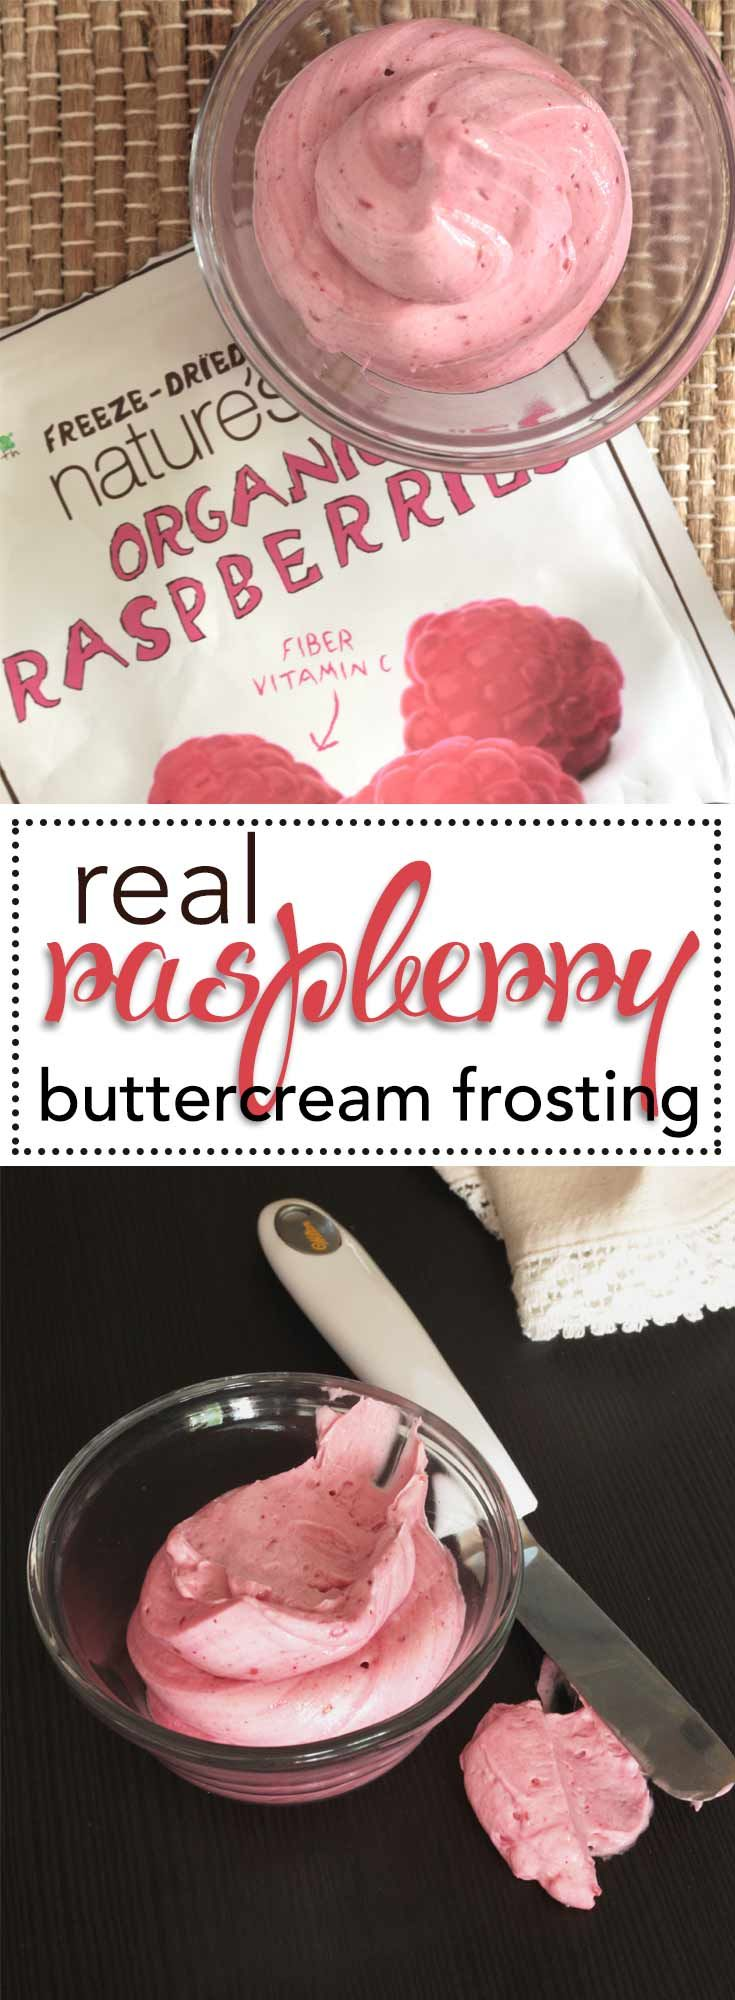 Real, All Natural Raspberry Buttercream Frosting. The best way to add REAL berries to your buttercream and get all natural flavor and color. Check out this super simple recipe. via @karascakes